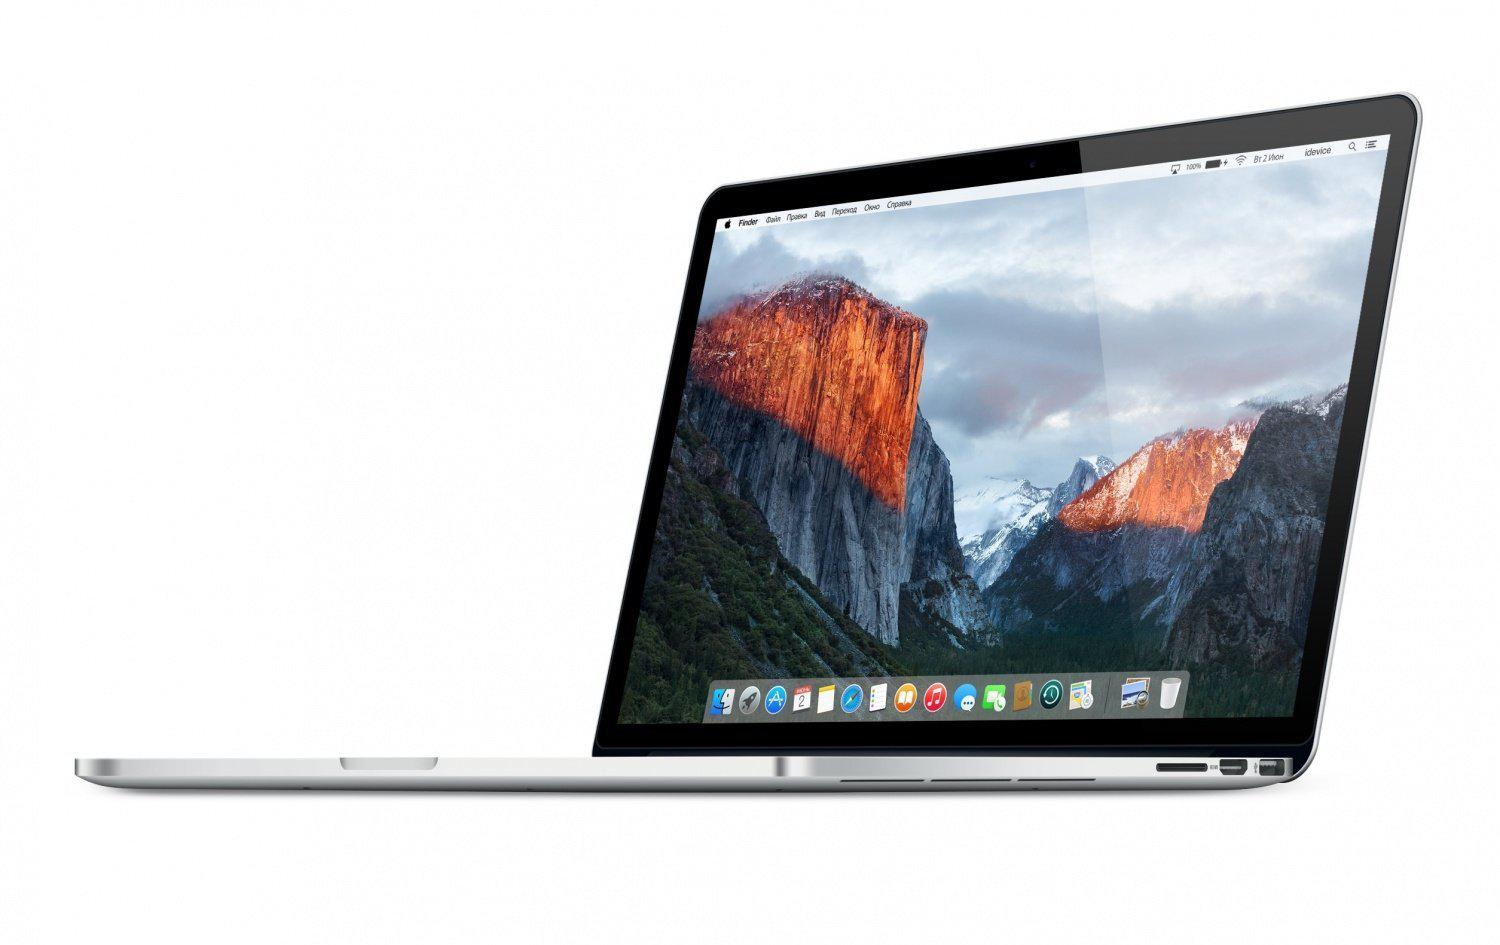 Apple Macbook Pro 15 Retina Core I7 2.6 Ghz 16GB (Late 2013) GT 750M